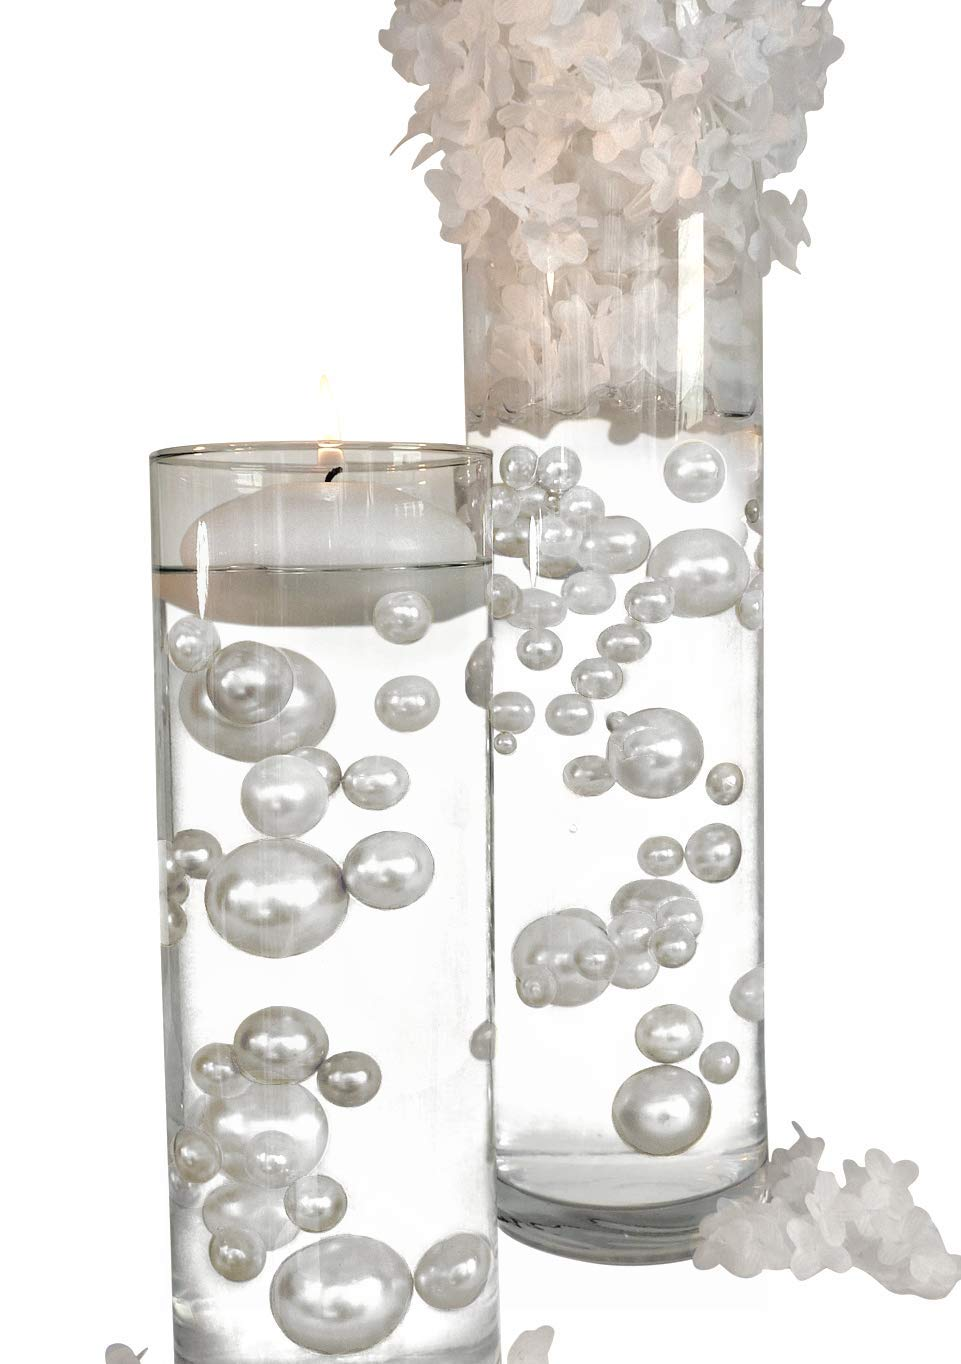 4 Packs Sale Floating No Hole White Pearls - Jumbo/Assorted Sizes Vase Decorations + Includes Transparent Water Gels for Floating The Pearls by Vase Pearlfection